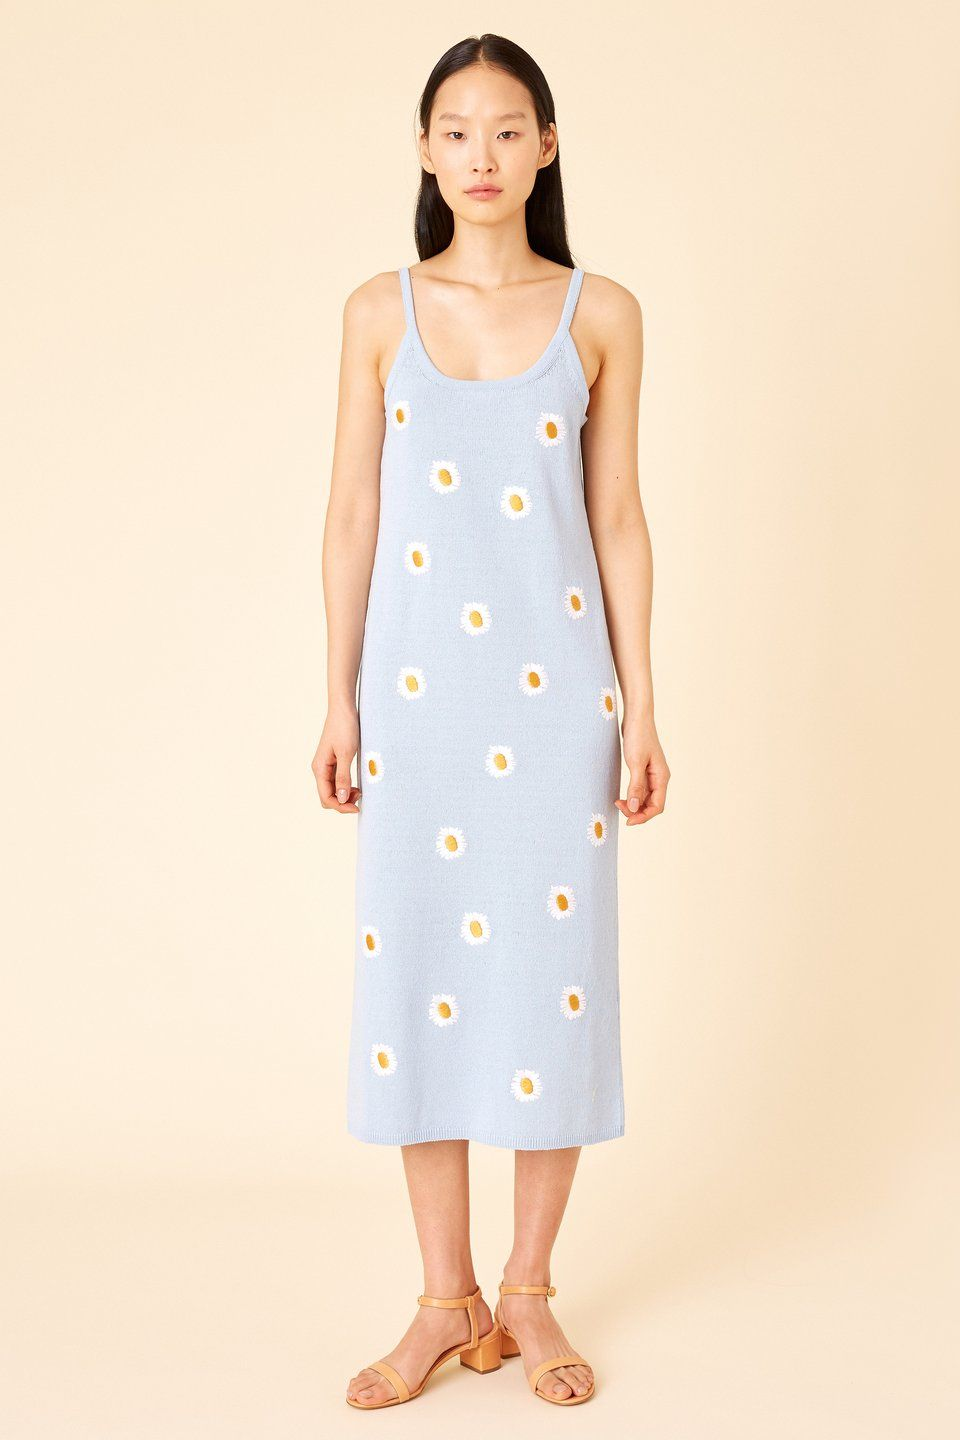 0150b9650d65 Italian daisy embroidered linen cotton blend sky blue knit slip dress. Scoop  neckline with thin straps. (1 of 6)